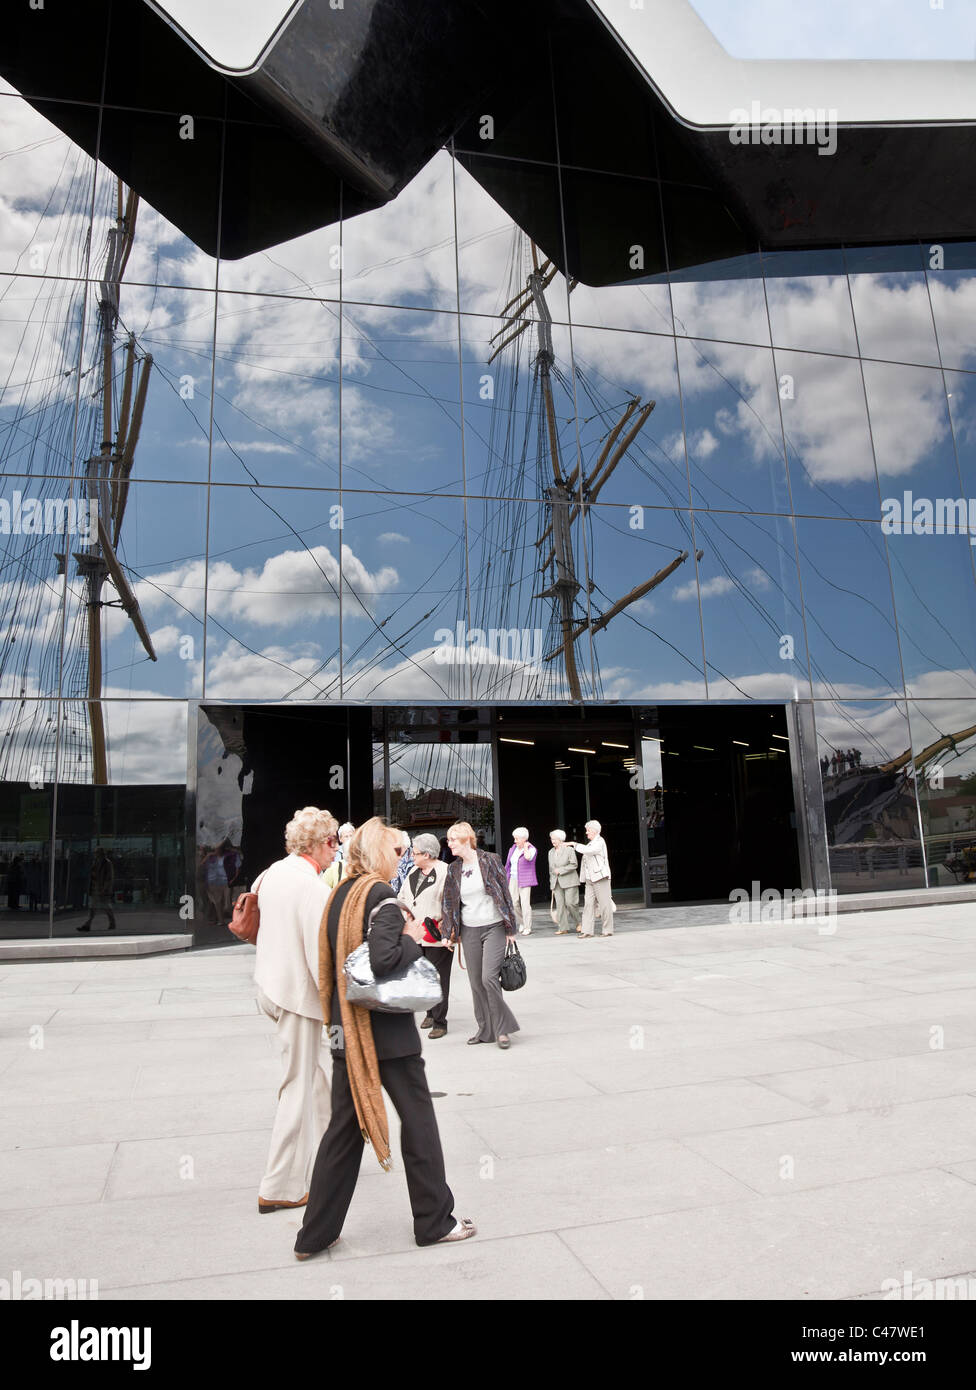 Visitors outside the Riverside Museum, Glasgow. The masts of the Glenlee (Tall Ship) are reflected in the glass - Stock Image